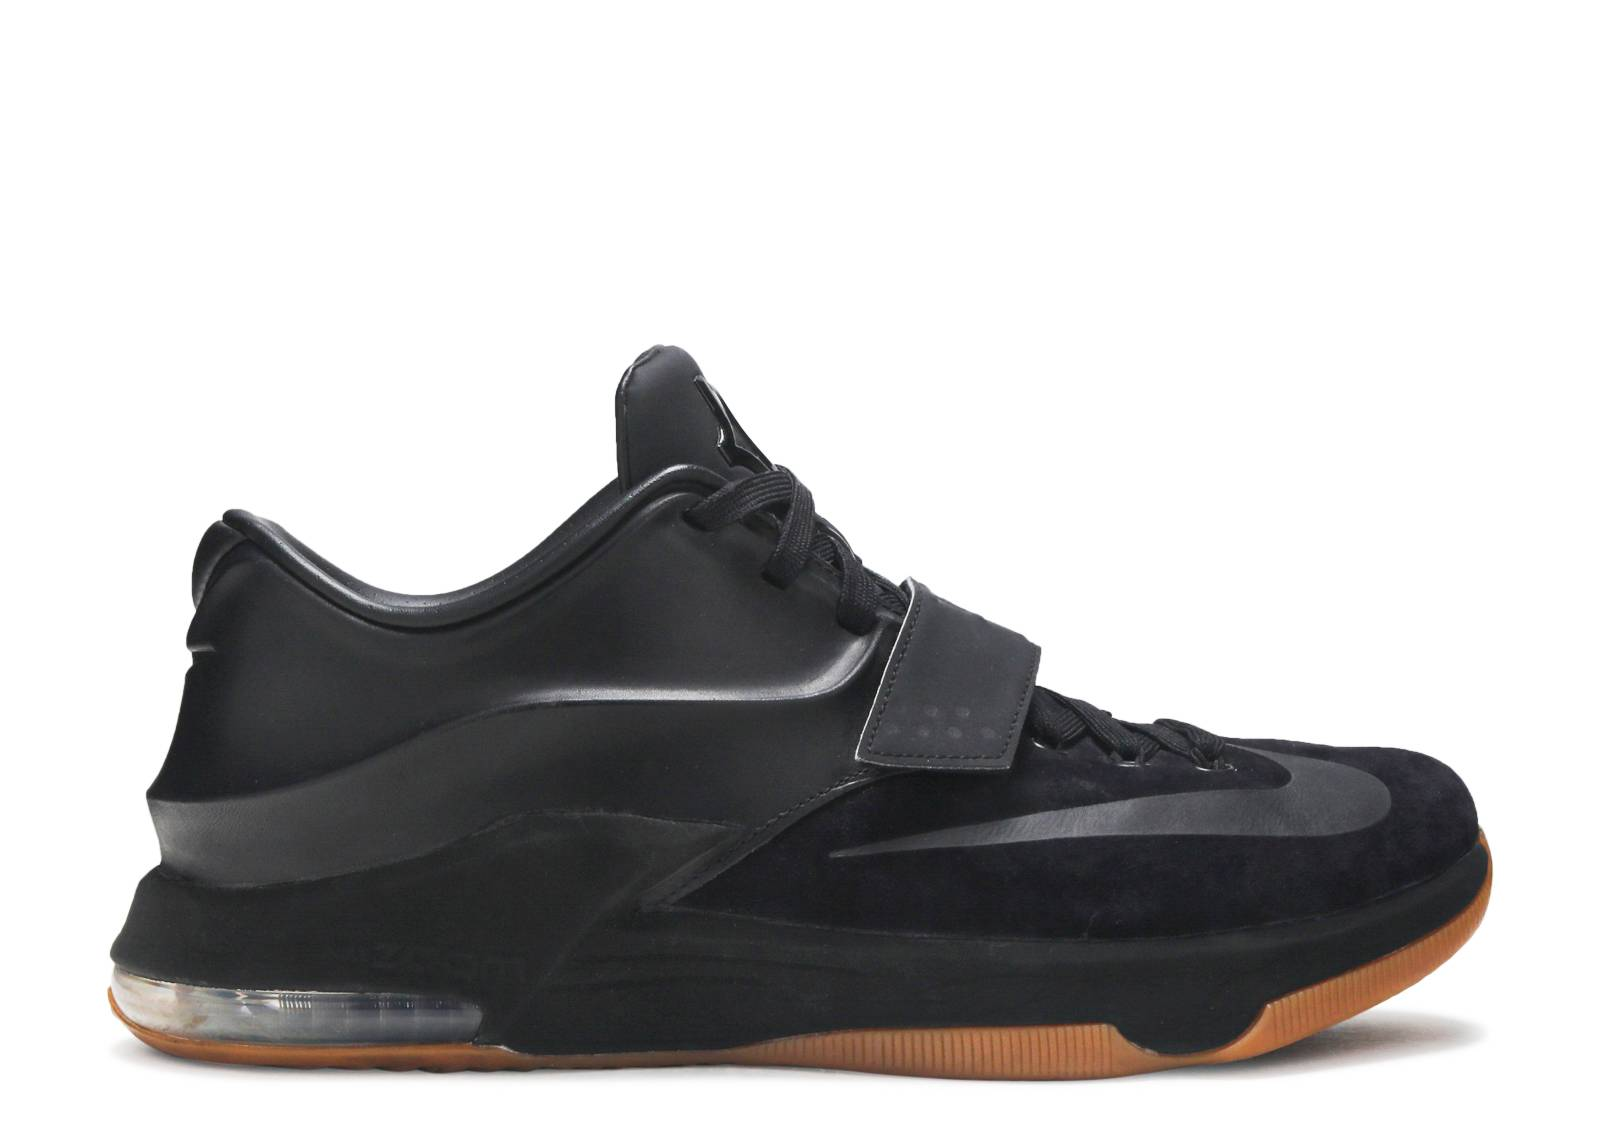 kd 7 ext suede qs